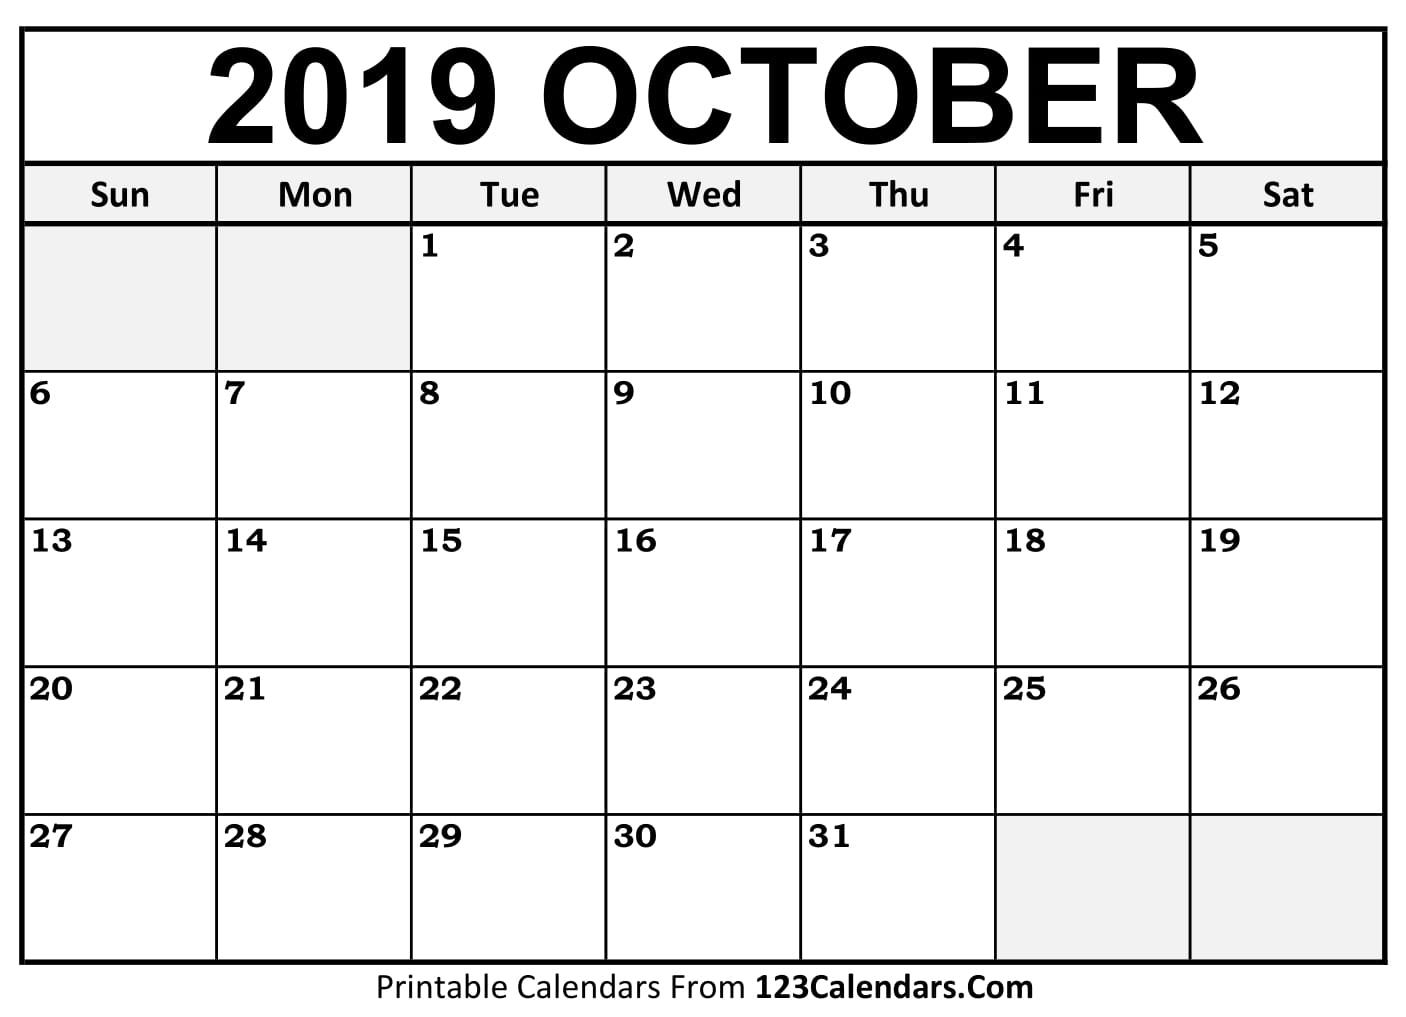 October 2019 Printable Calendar | 123Calendars regarding Calendars Sept And October 2019